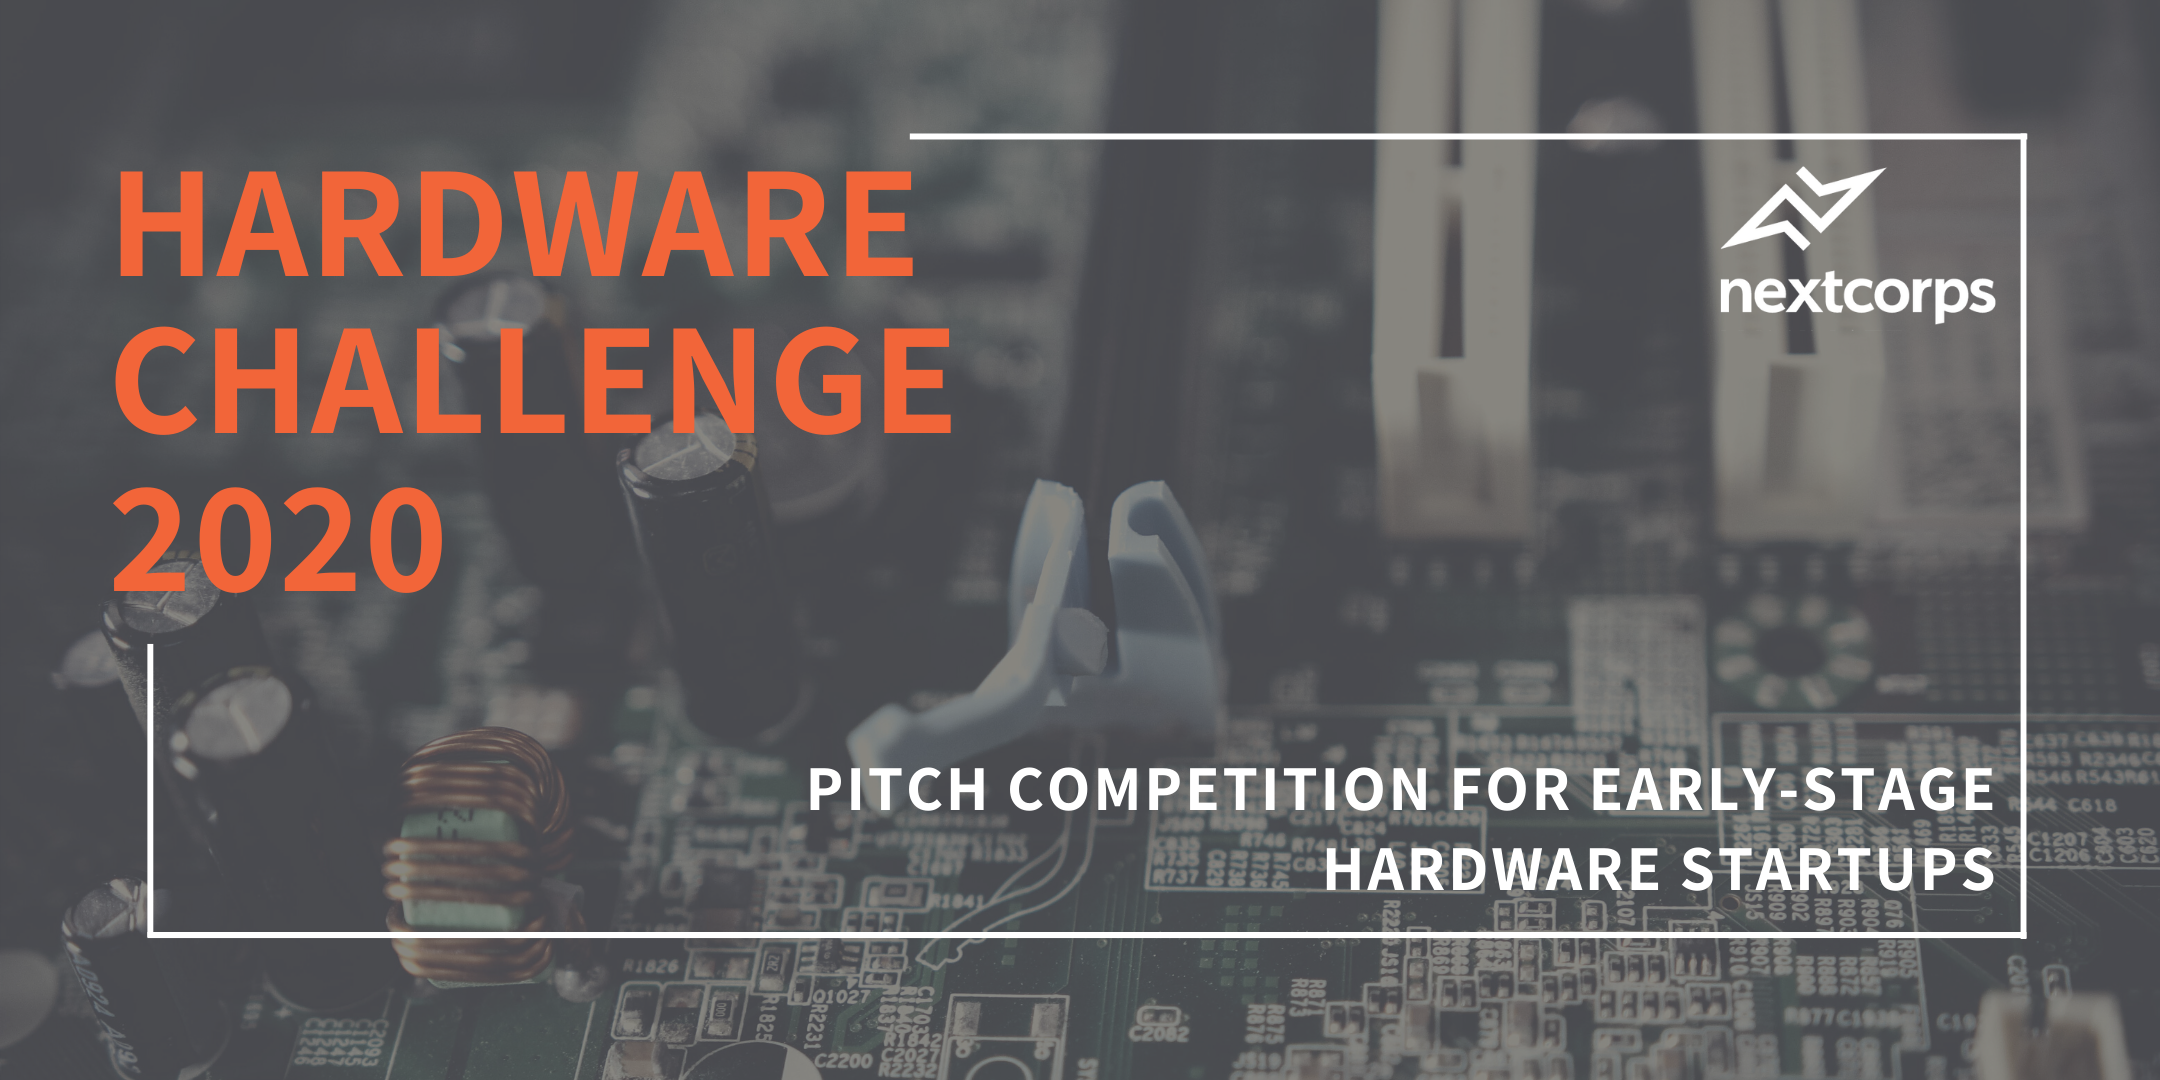 Hardware Challenge 2020 Pitch Competition